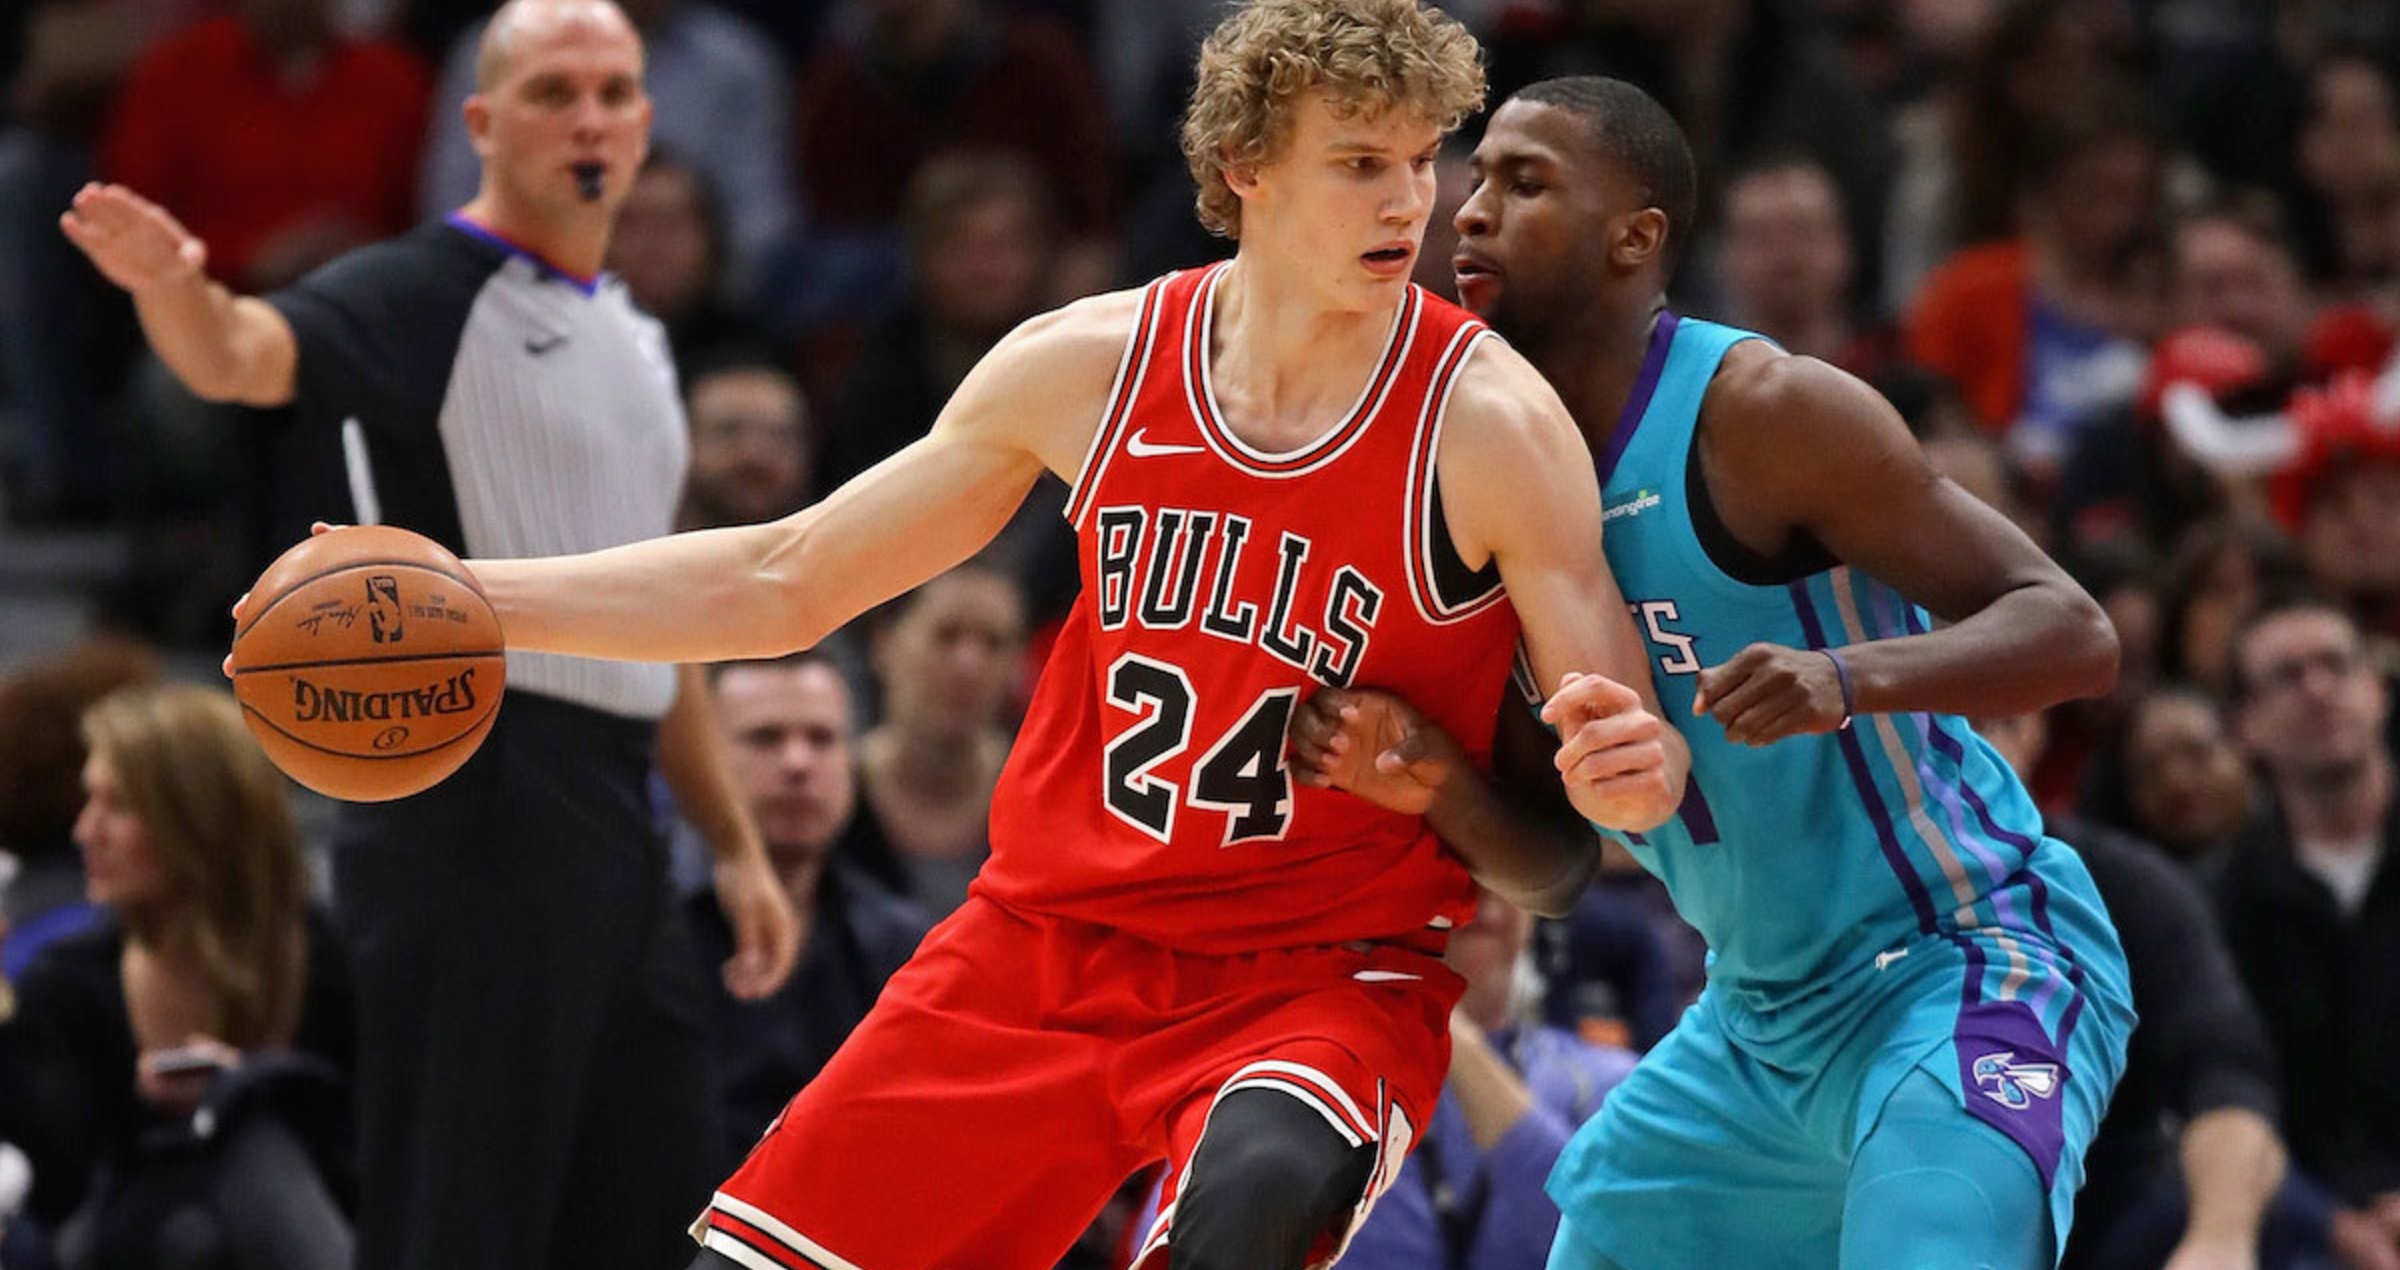 Lauri Markkanen I Have A High Level Of Confidence In Myself And I Think Thats The Only Way You Can Survive In This League